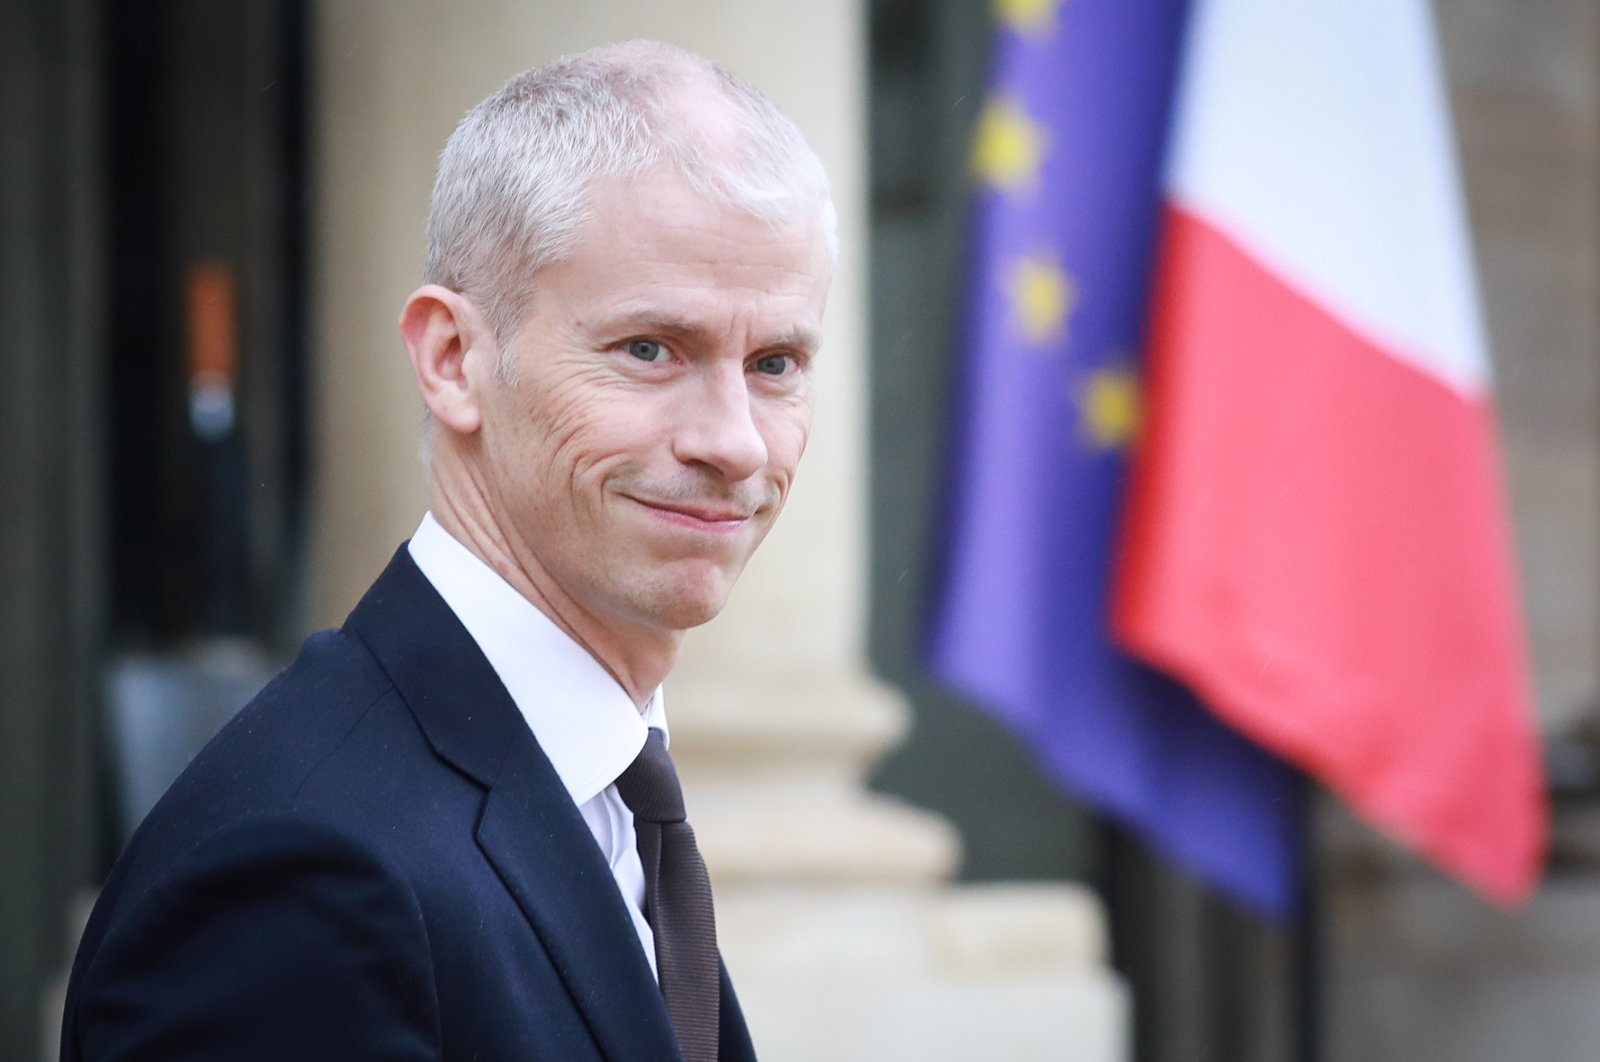 French Culture Minister Franck Riester leaves the Elysee Presidential Palace after a weekly cabinet meeting on March 4, 2020, in Paris. (Photo by Ludovic Marin / AFP)